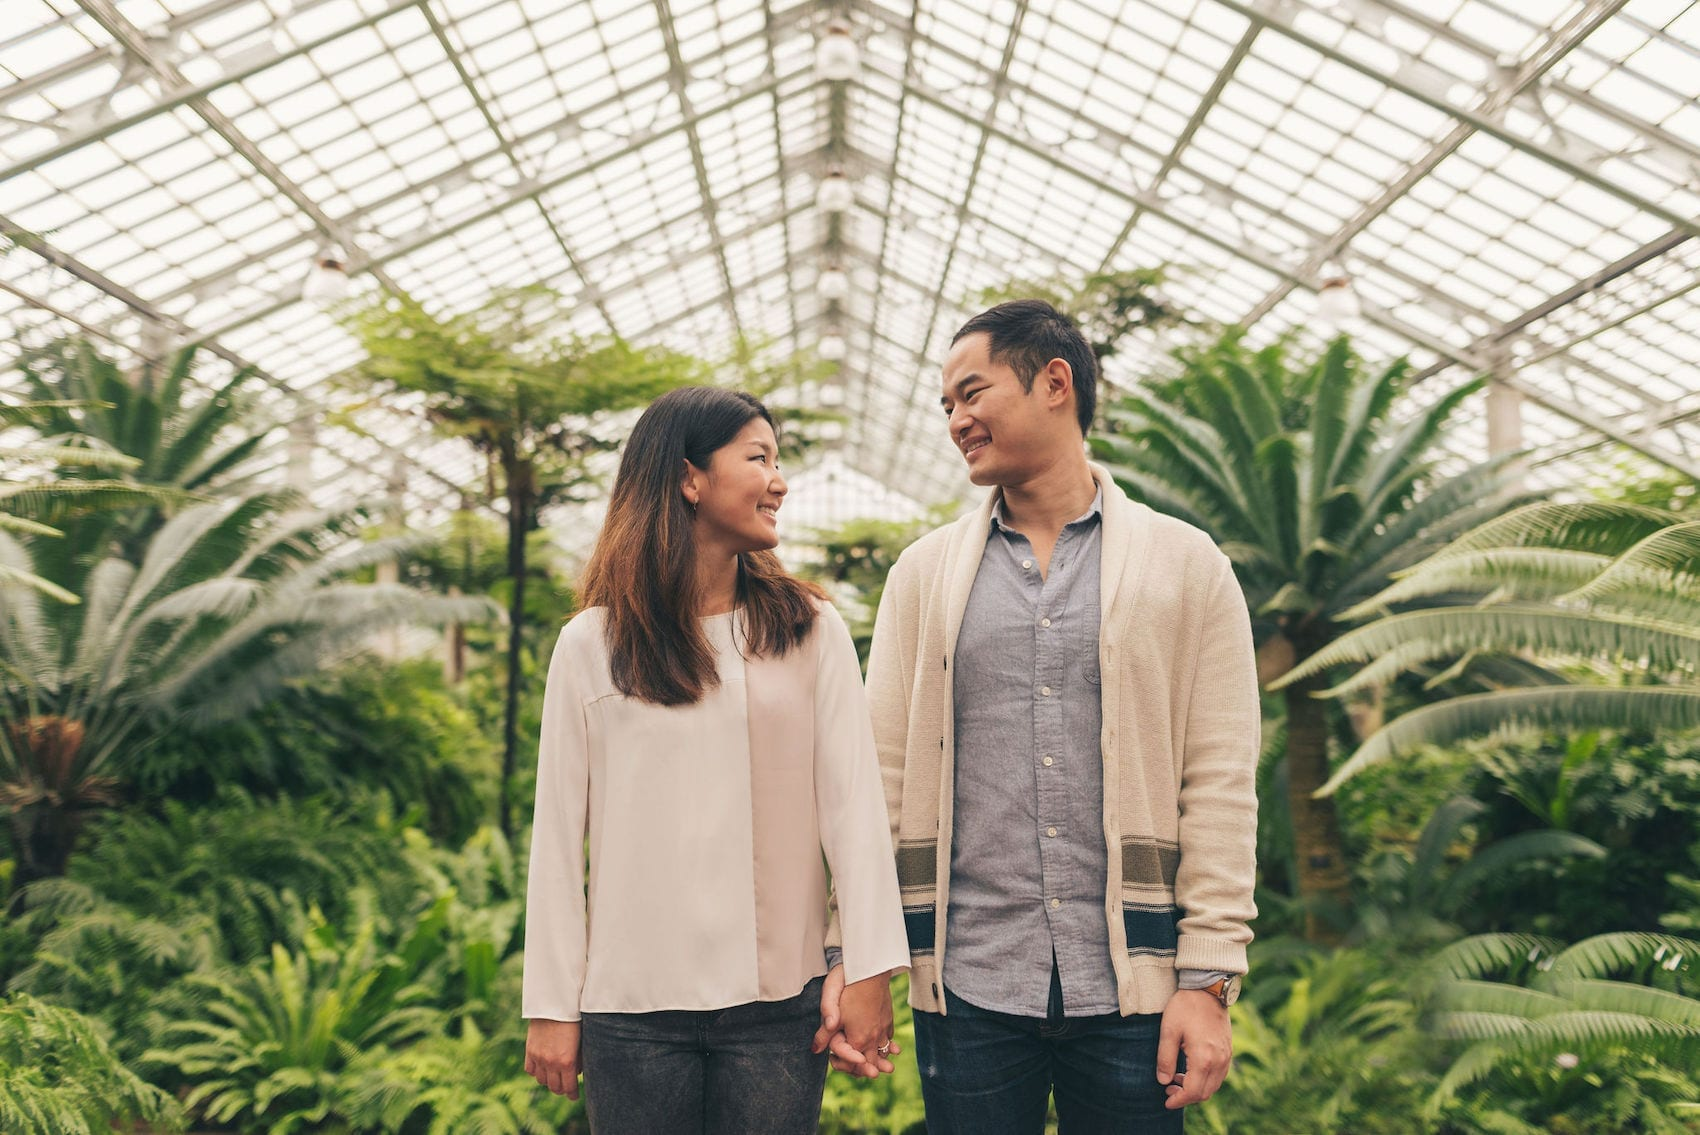 Thara Photo Chicago Engagement Photographer Garfield Park Conservatory